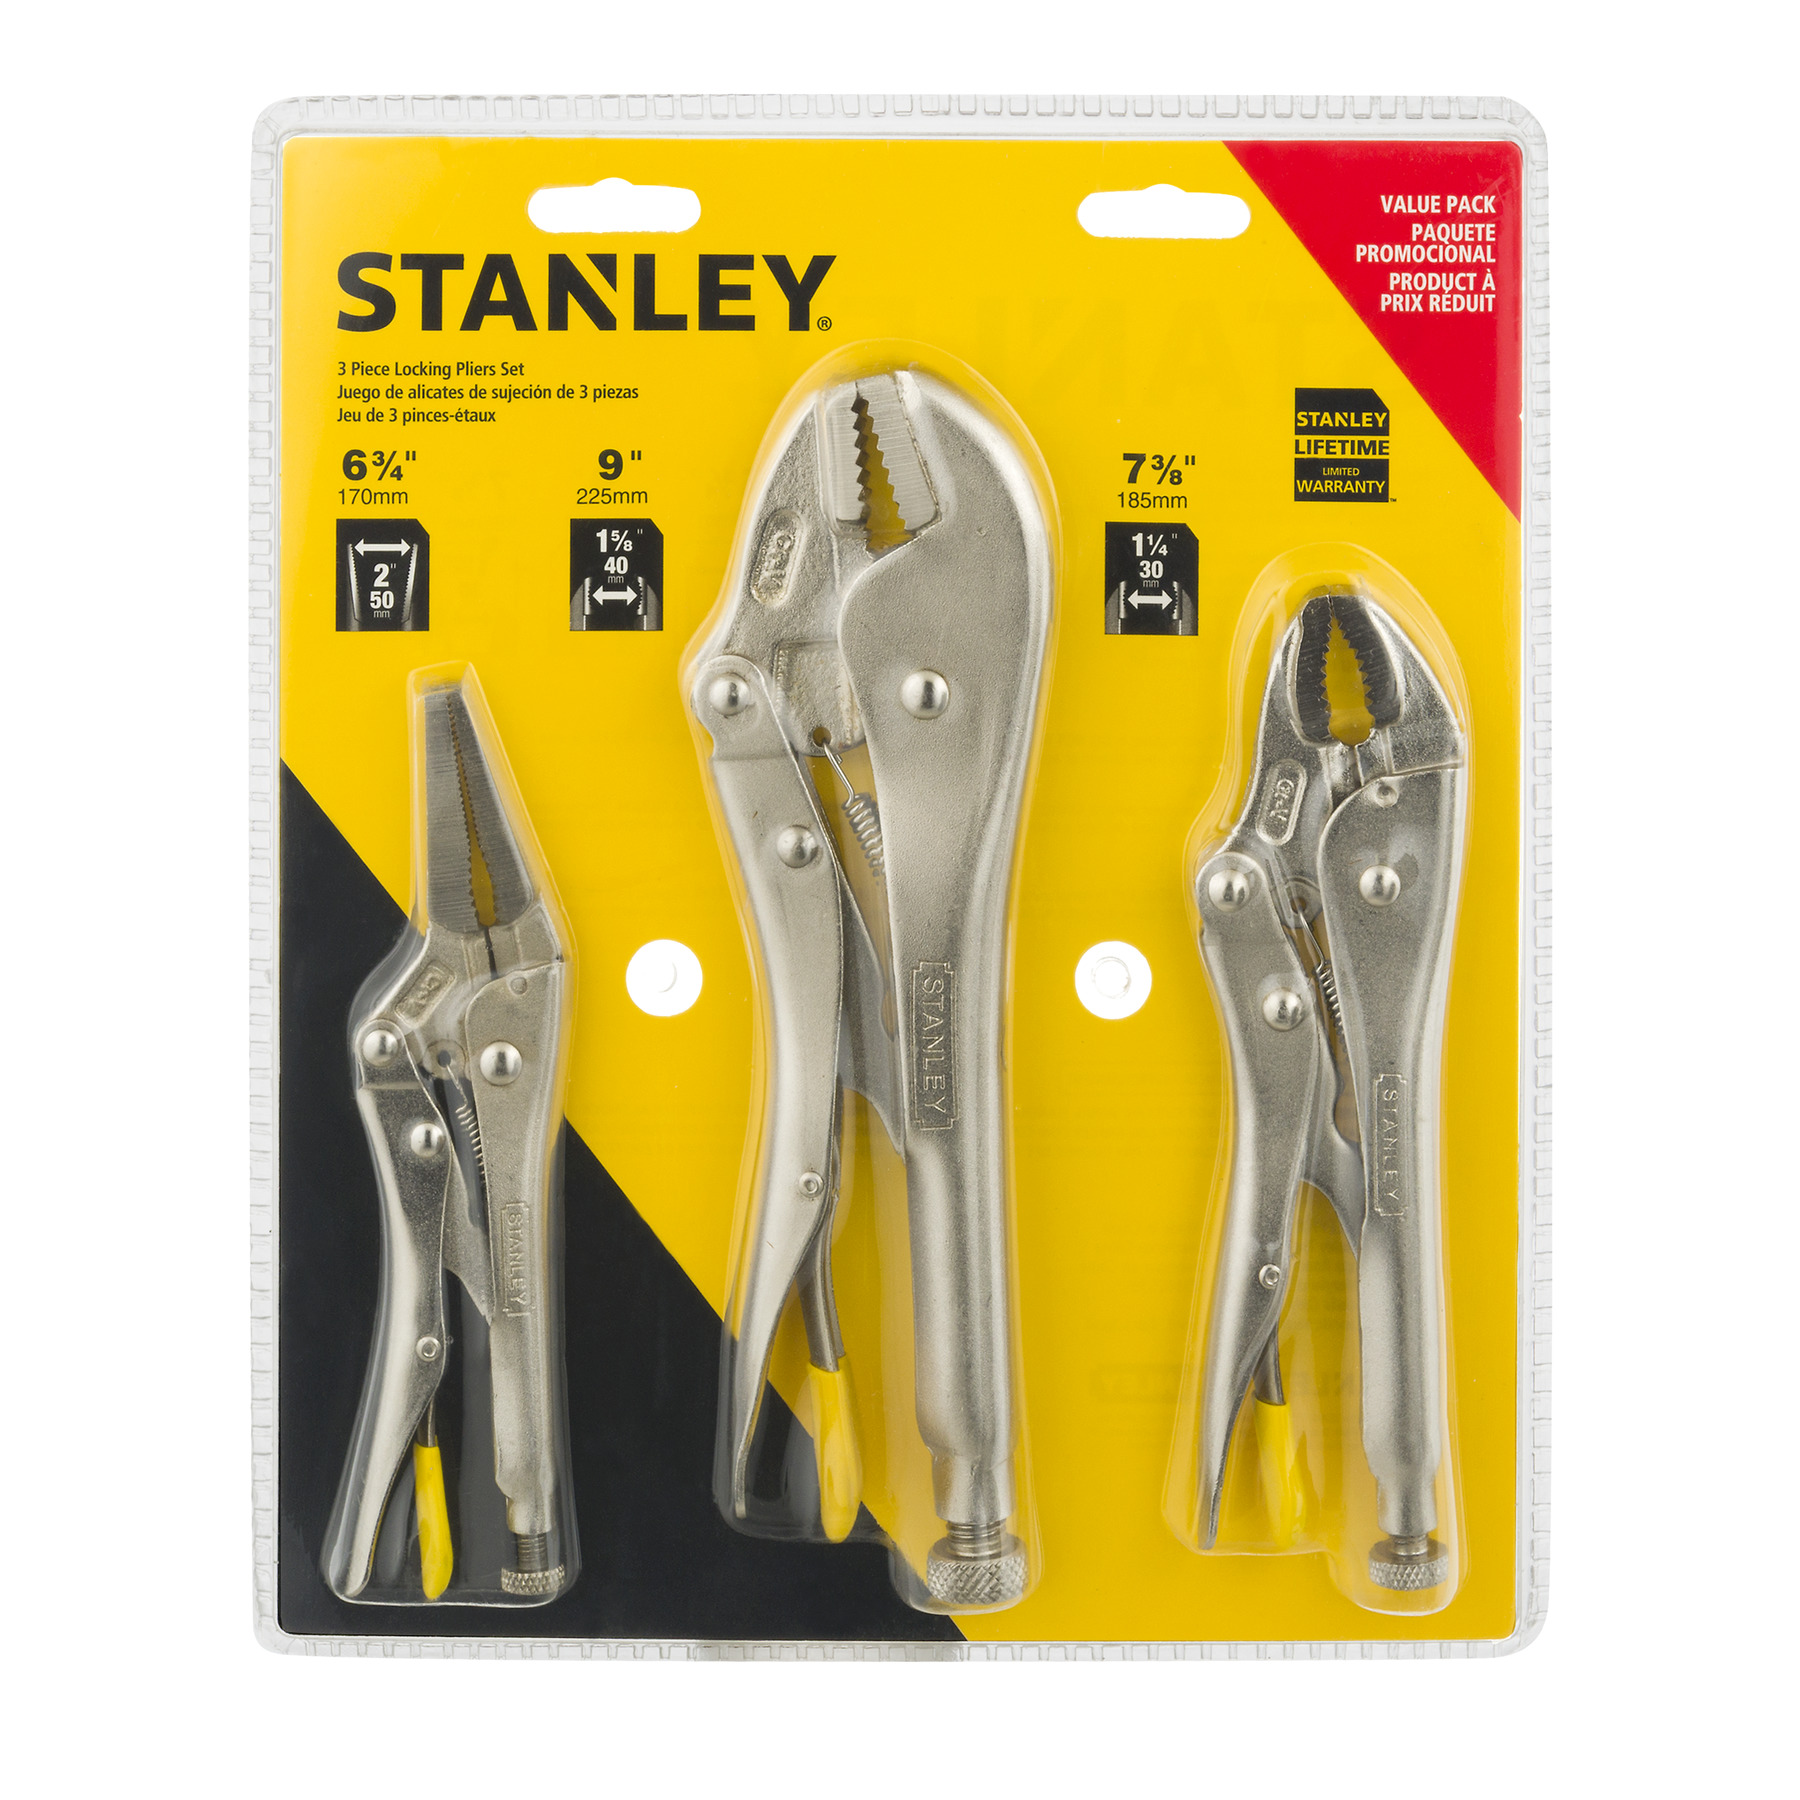 Stanley Locking Pliers Set - 3 PC, 3.0 PIECE(S)